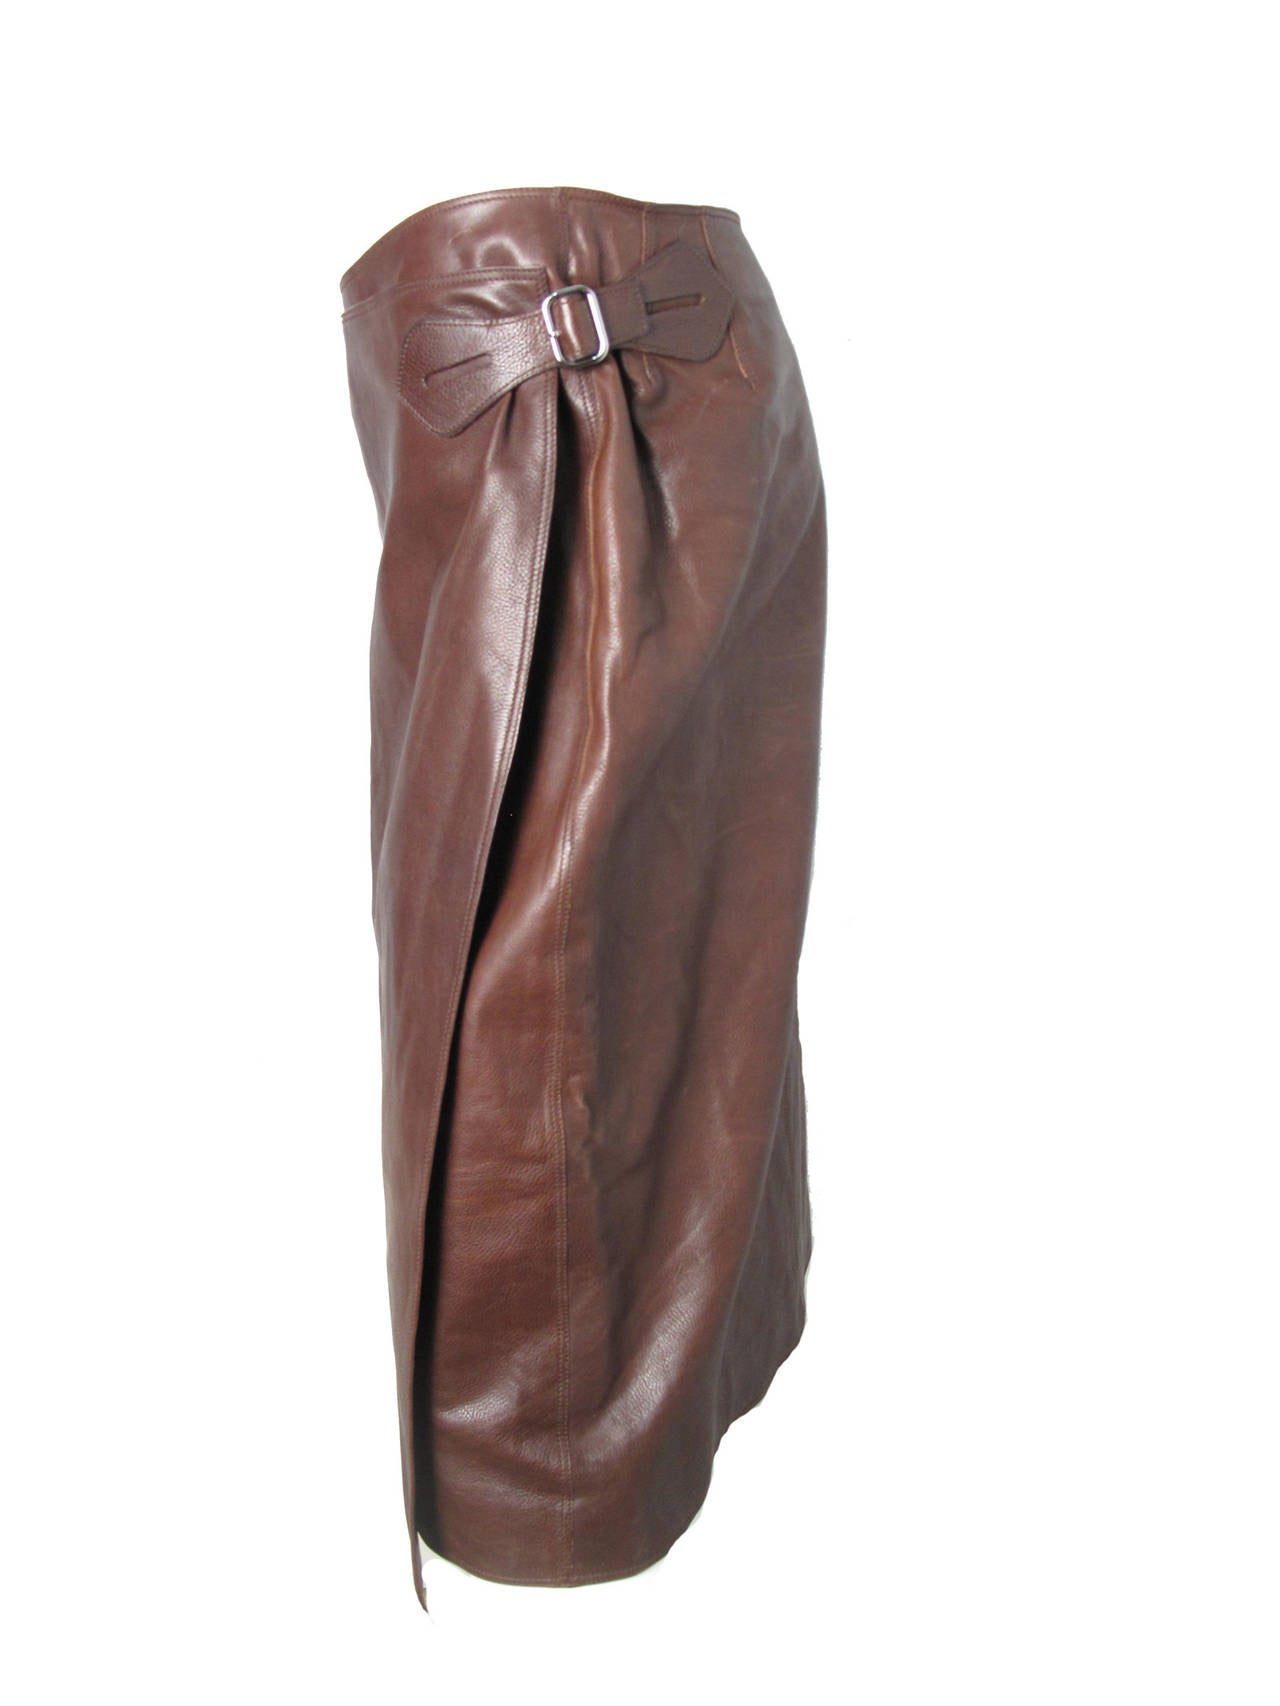 Hermes Rich Dark Brown Leather Wrap Skirt with Buckle 3